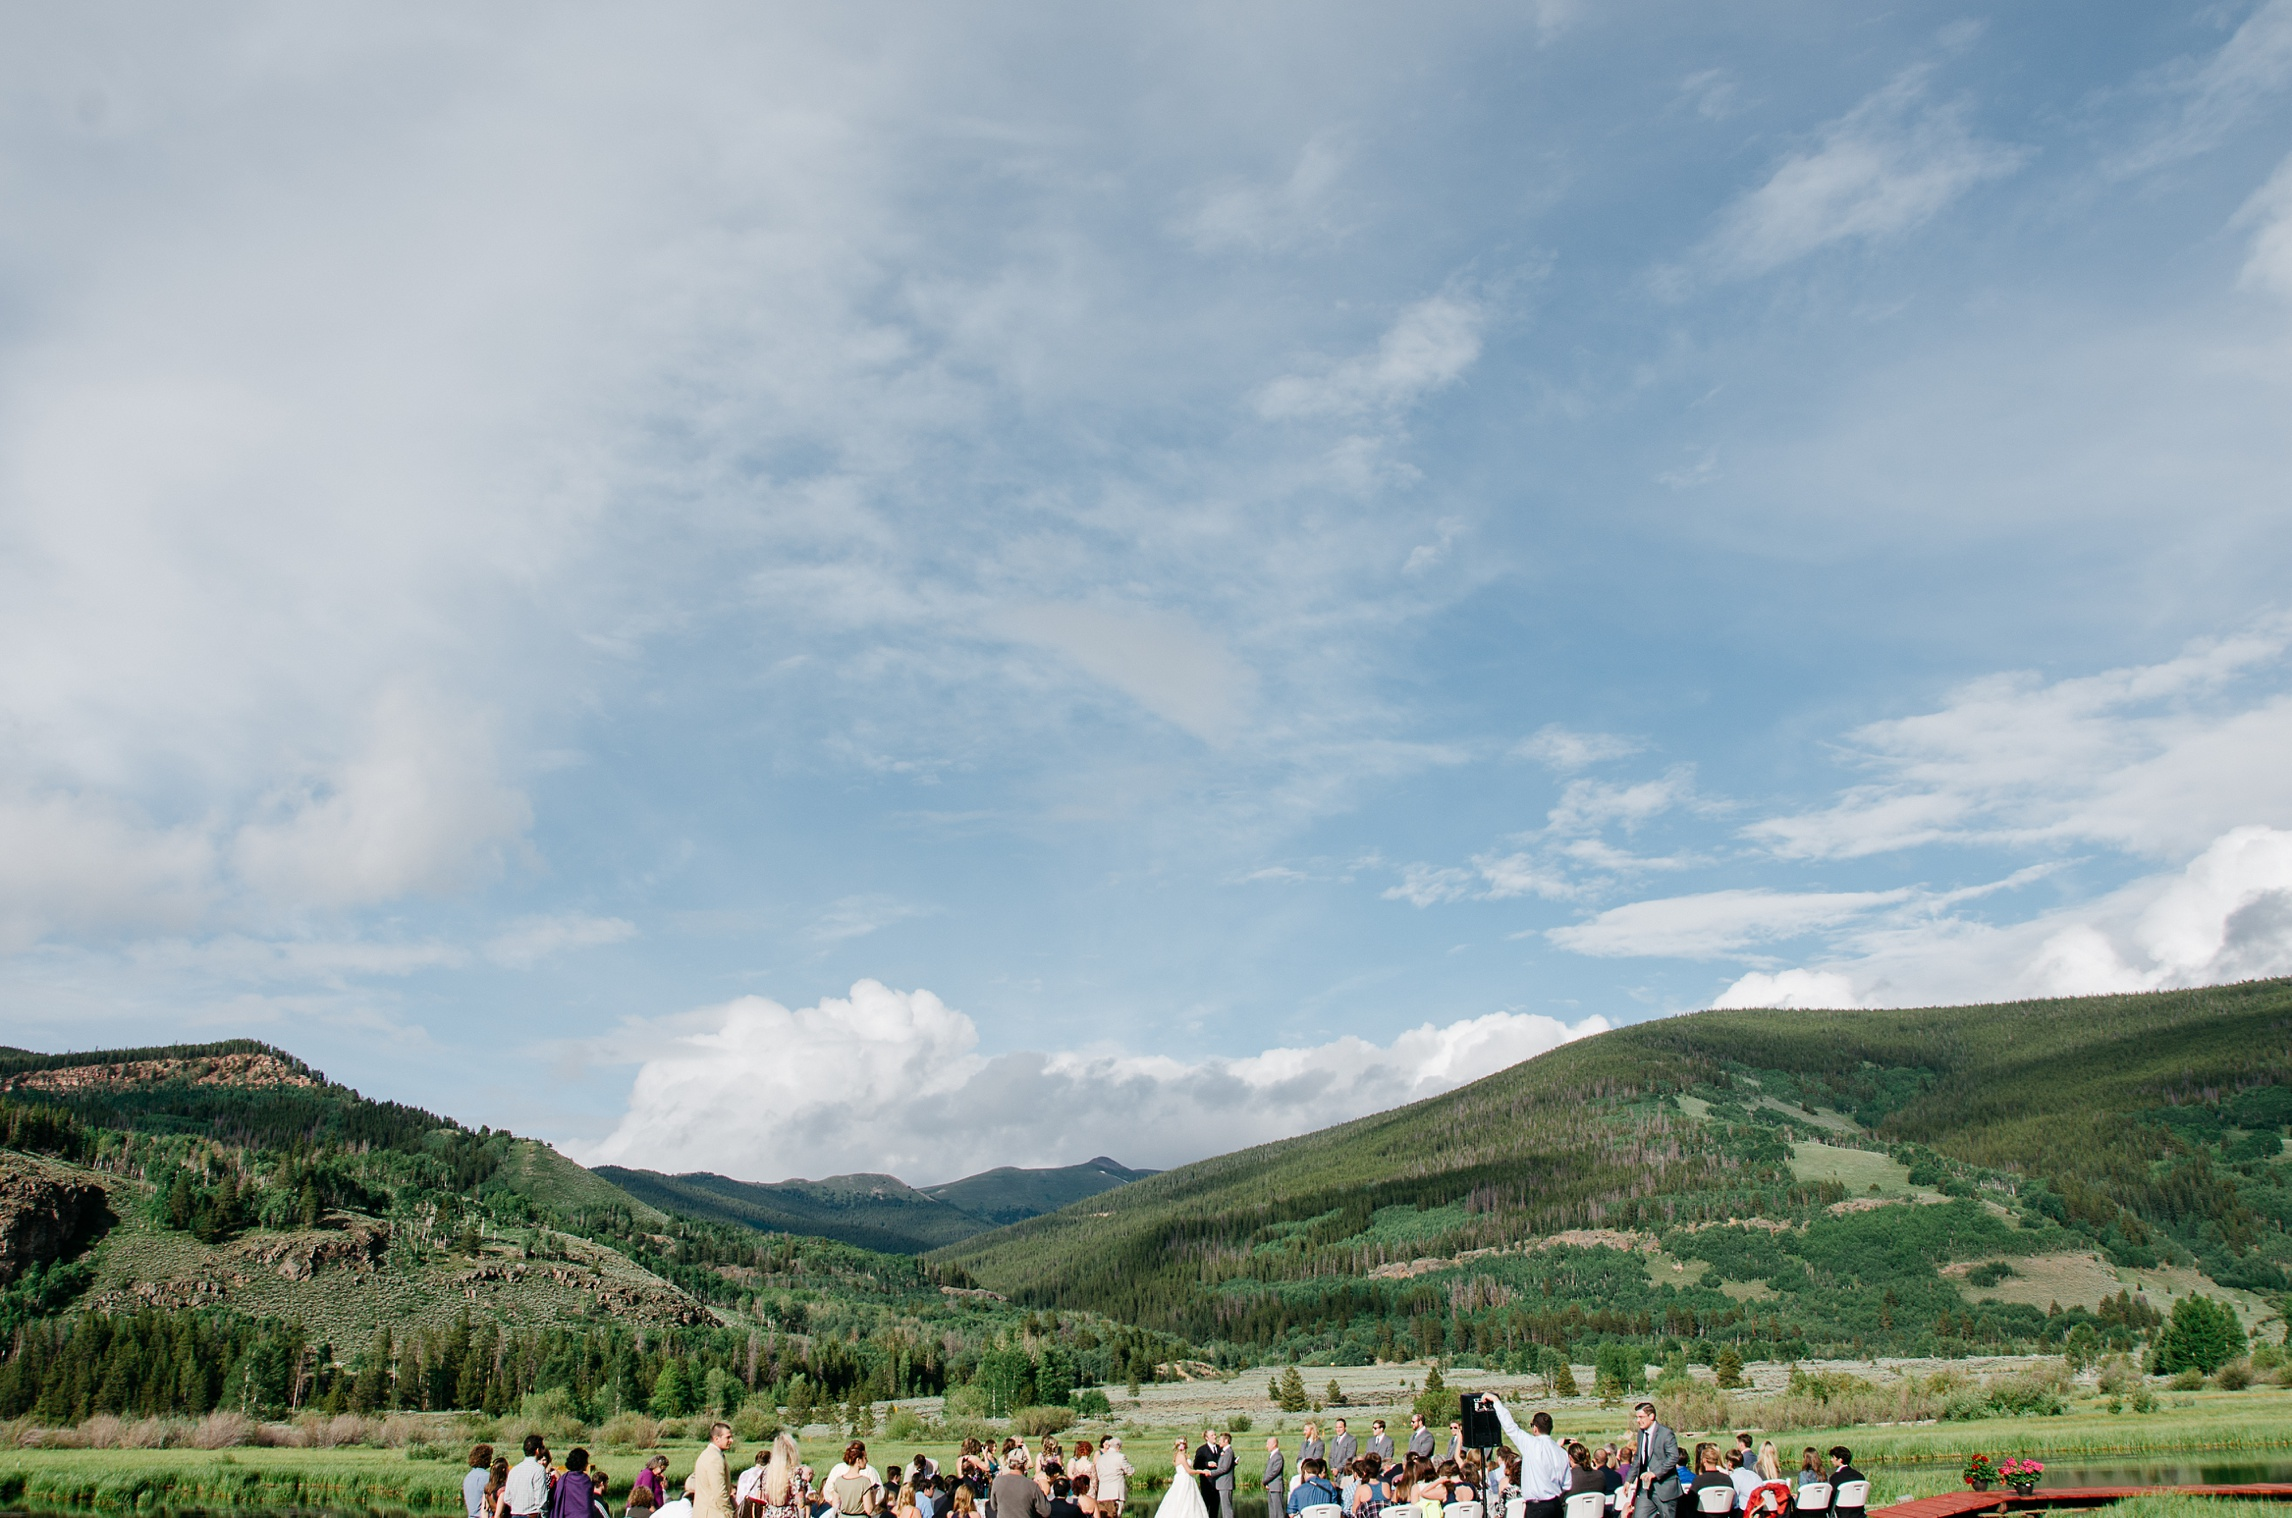 A mountain wedding at Camp Hale near Vail, Colorado. Wedding photography by Sonja Salzburg of Sonja K Photography.